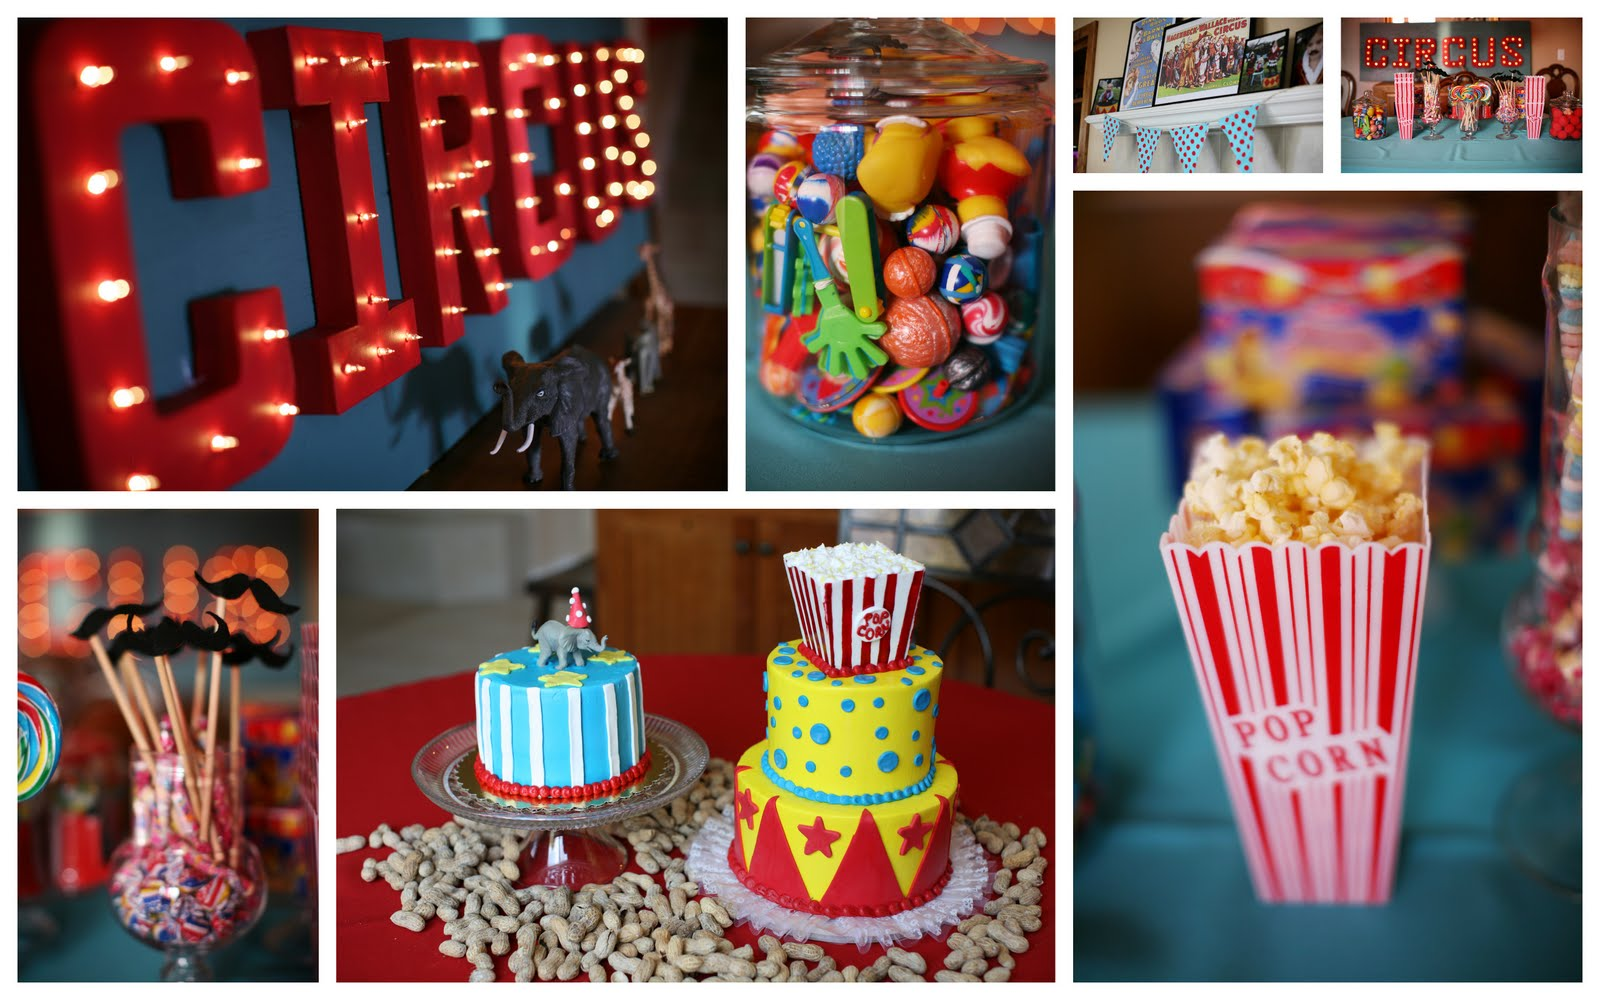 popcorn the circus img a birthday with party decorations found keeping i decor hobby of at kiddos boxes have they lobby ton up